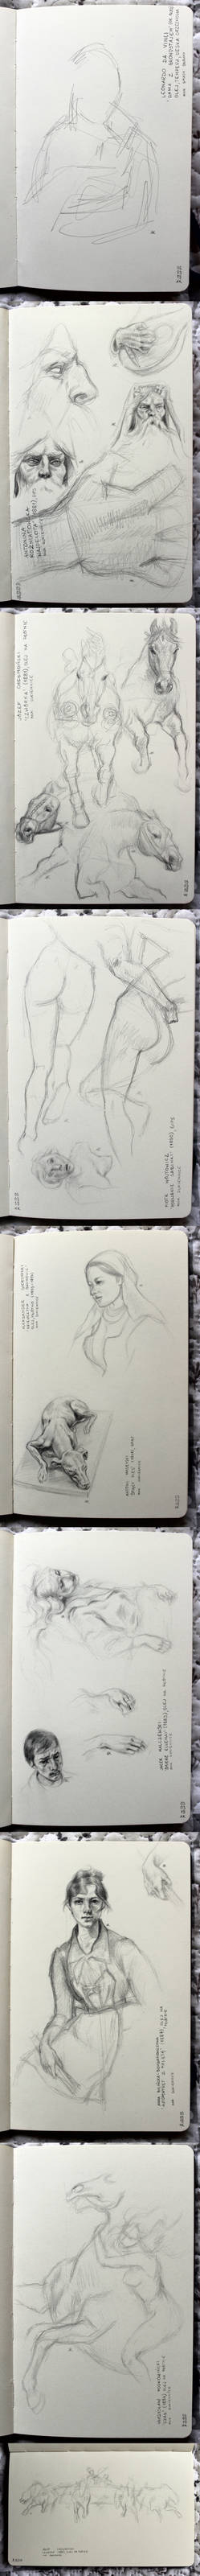 Studies from National Museum in Krakow